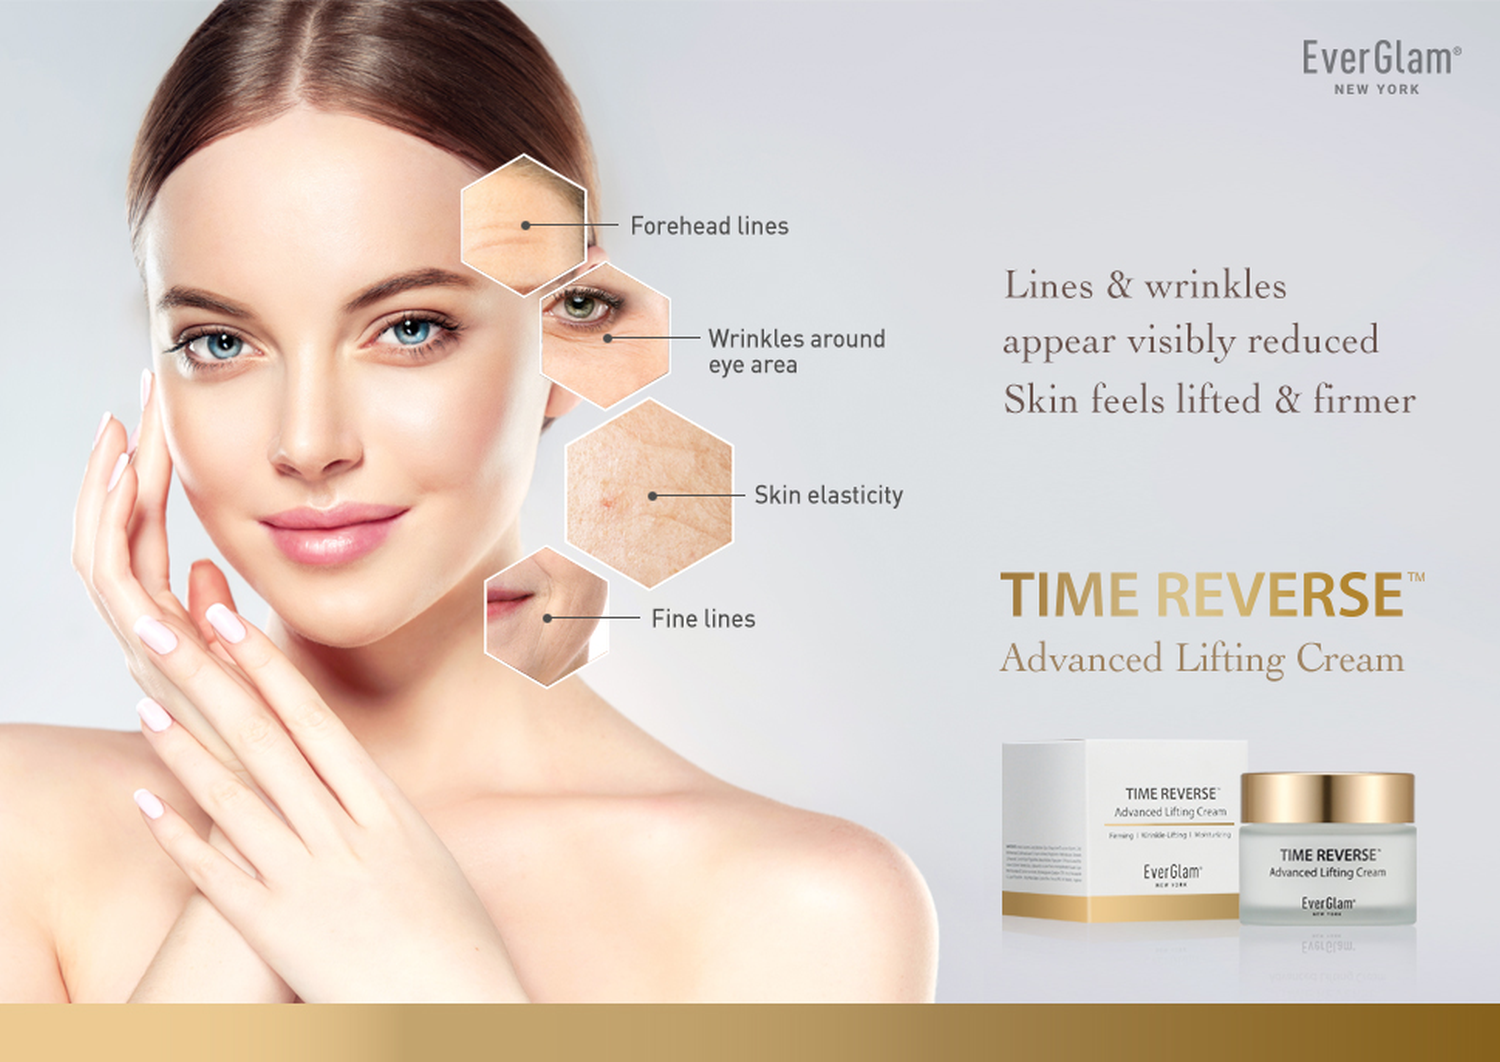 EverGlam TIME REVERSE™ Advanced Lifting Cream